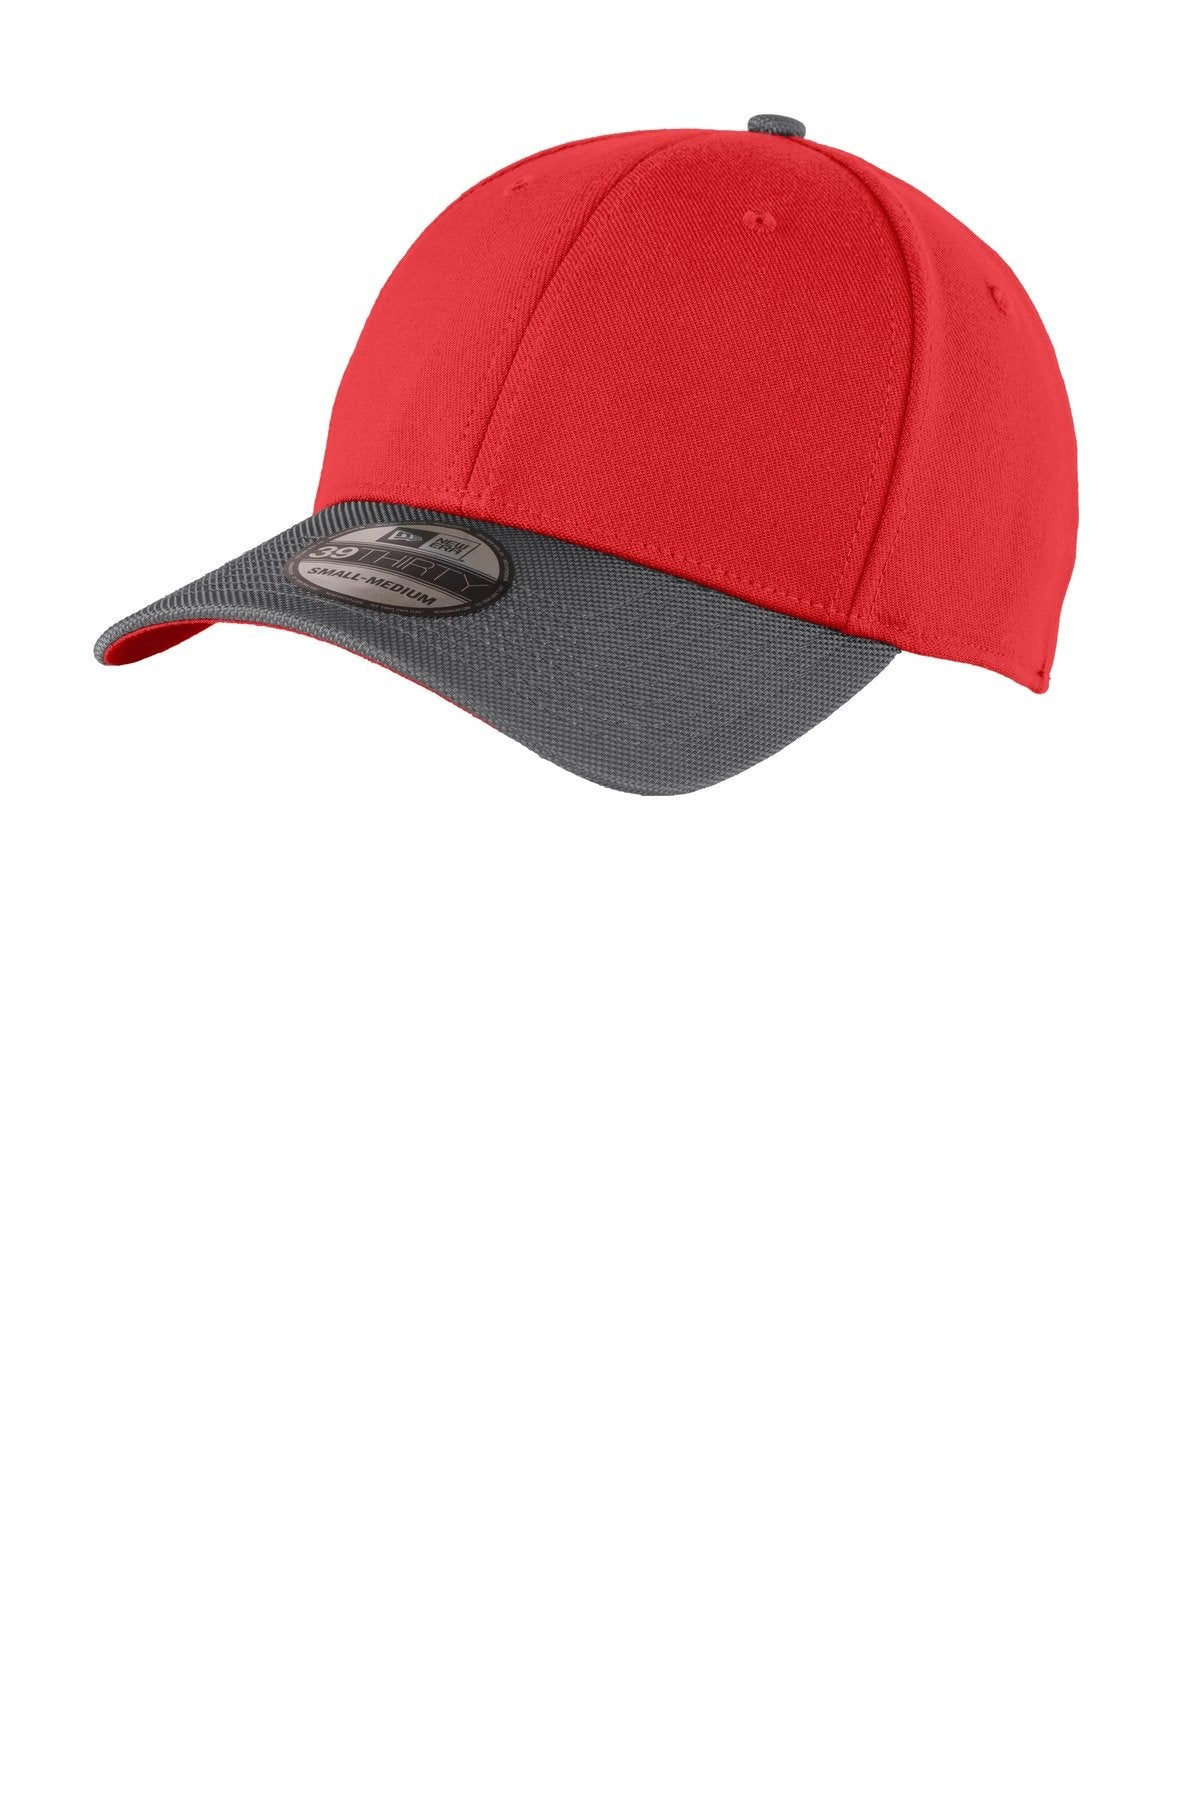 Scarlet/ Charcoal - New Era NE701